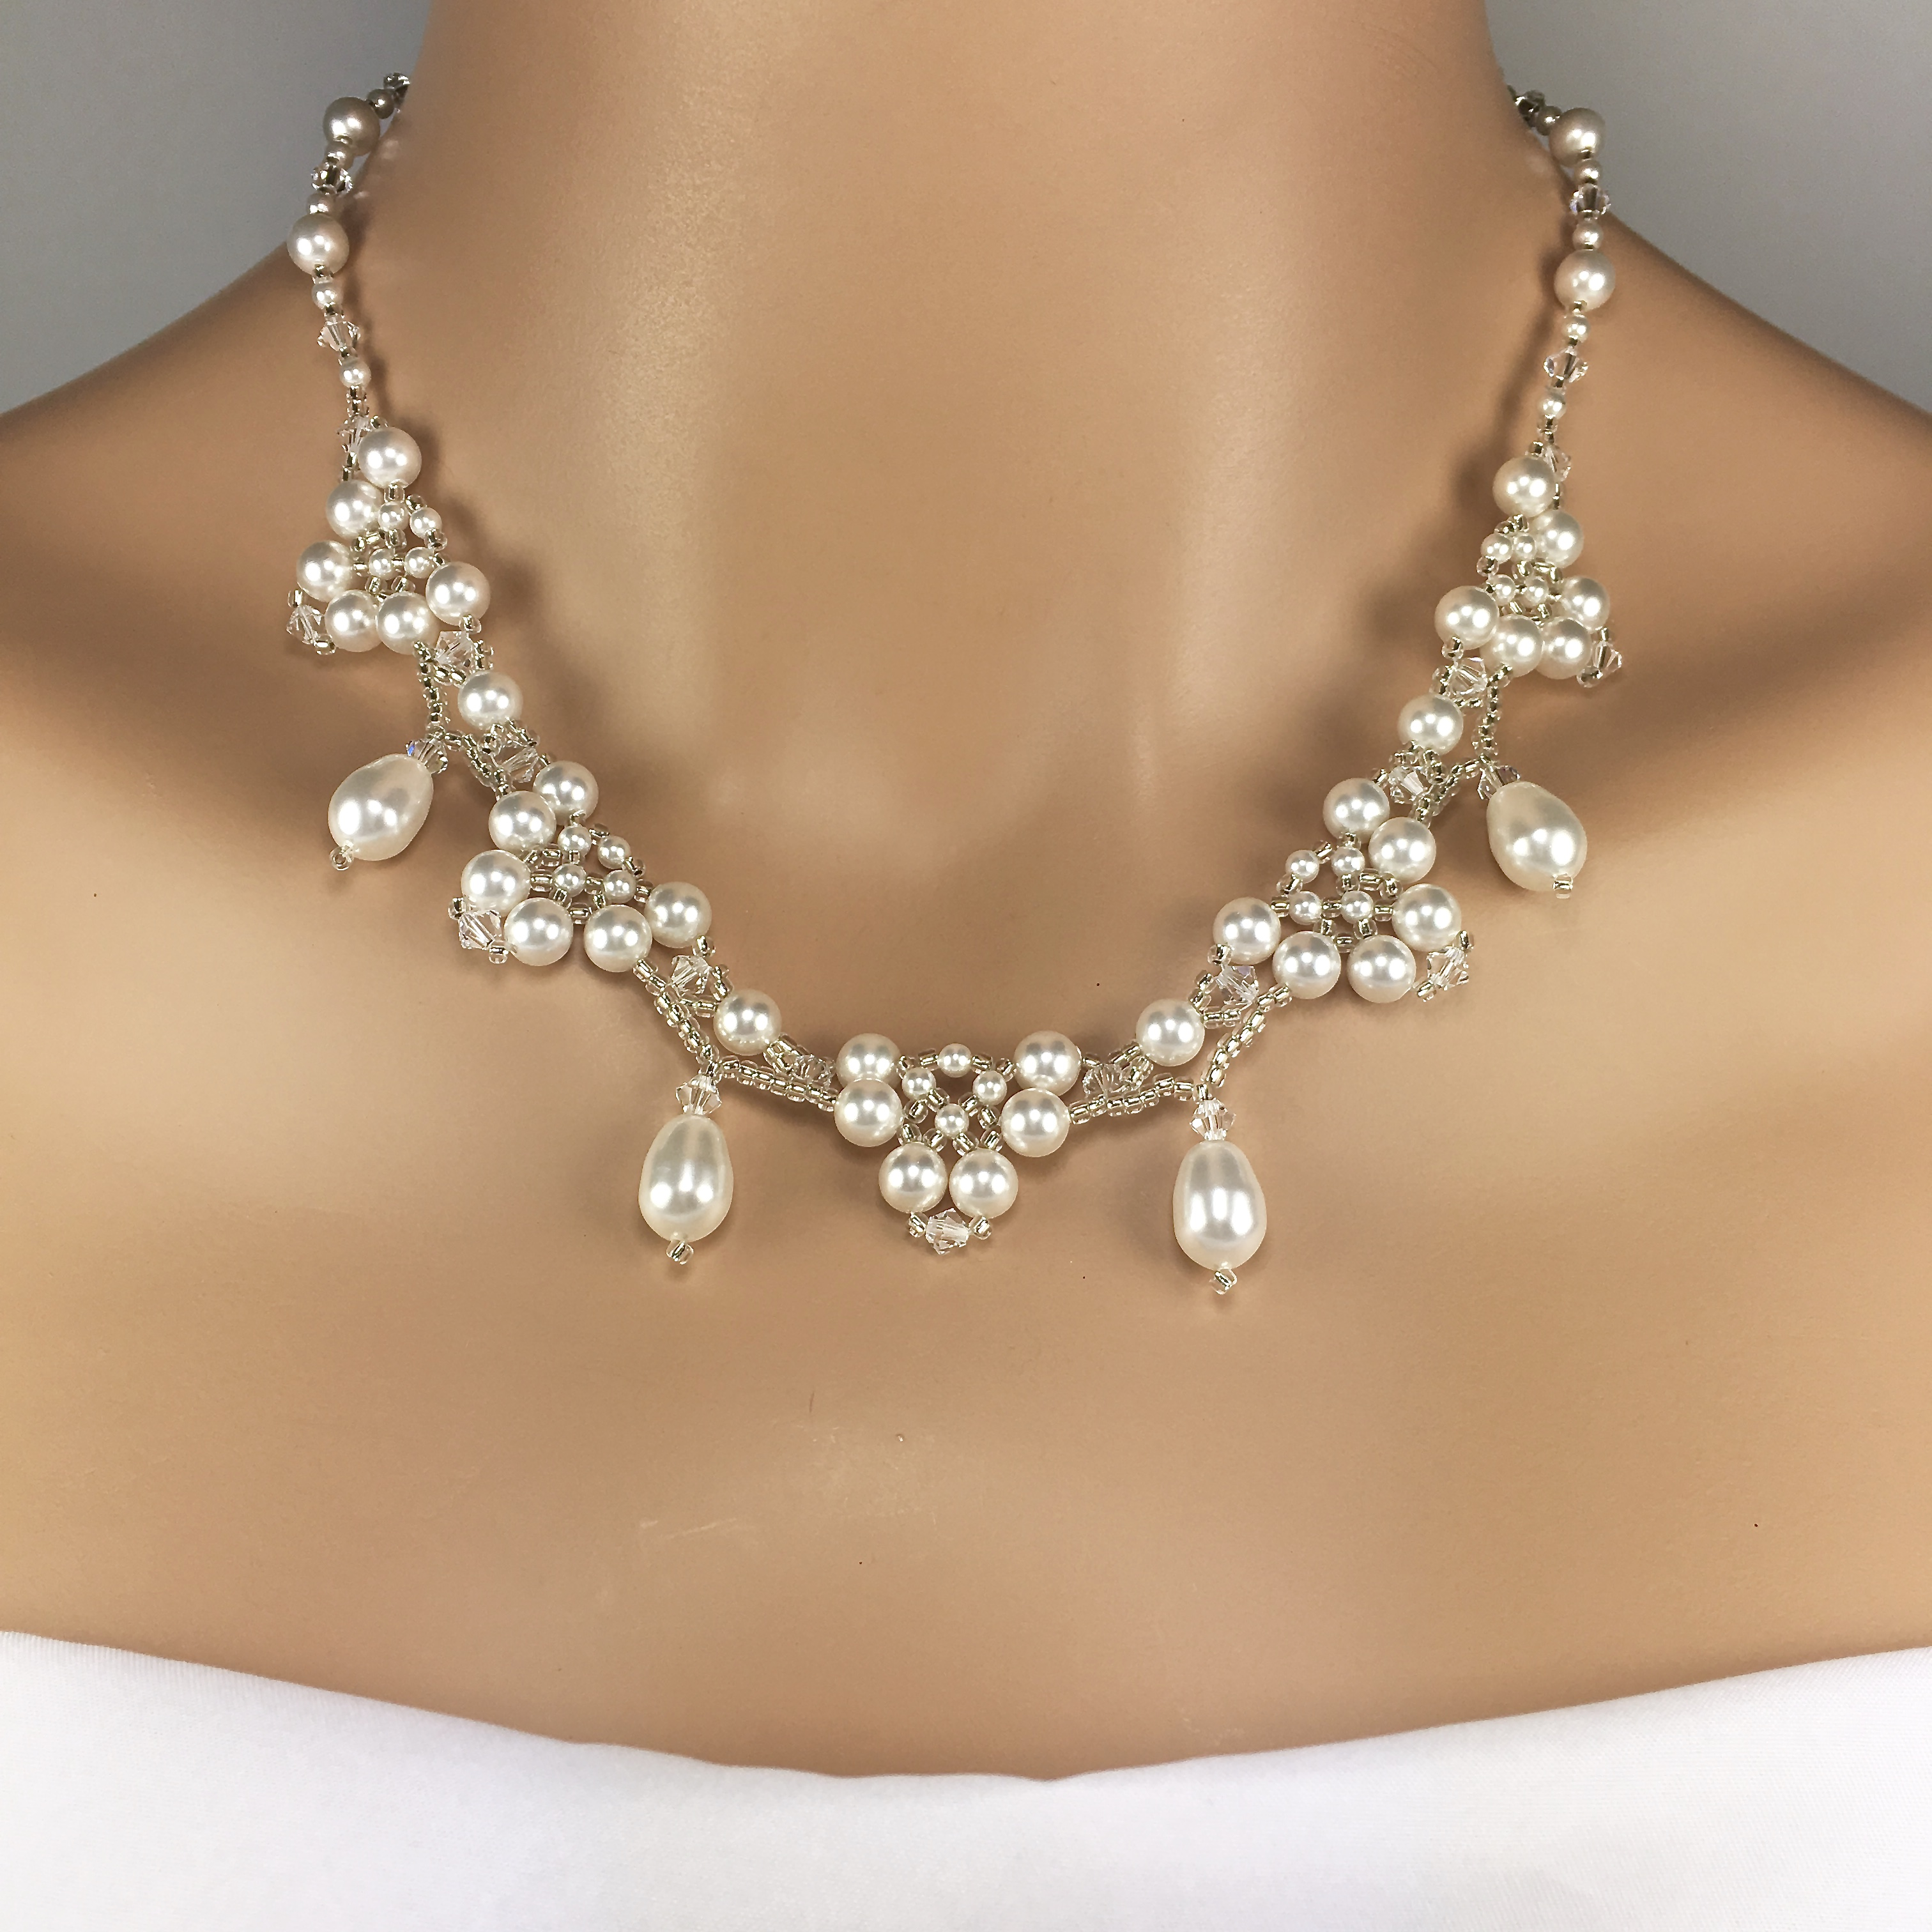 70a2c55556a067 Vintage Style Pearl Bridal Jewelry Set Beaded Pearl Necklace Amelia Collection  SBJ-AMEL